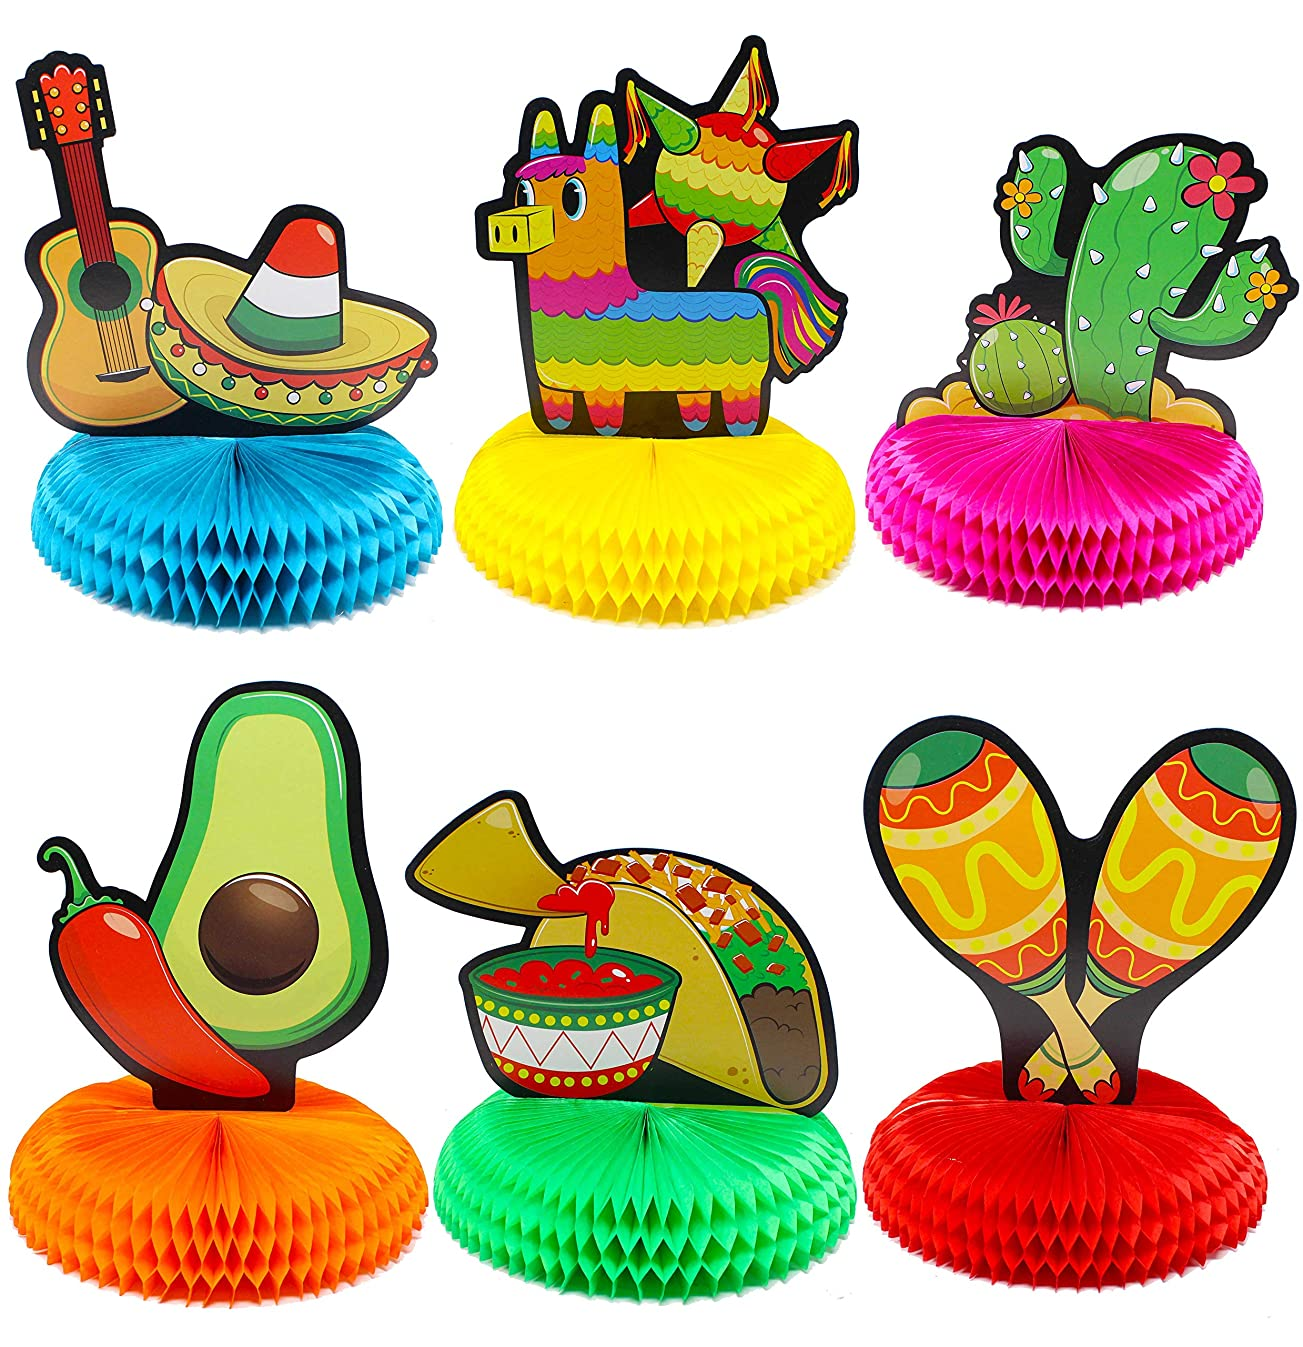 """6 PCs Cinco De Mayo Fiesta Honeycomb Table Centerpiece 8.5"""" Party Decoration for Fun Fiesta Taco Party Supplies, Luau Event Photo Props, Mexican Theme for Carnivals Festivals, Dia De Muertos, Coco Theme, Wedding, Birthdays and Party Favors"""